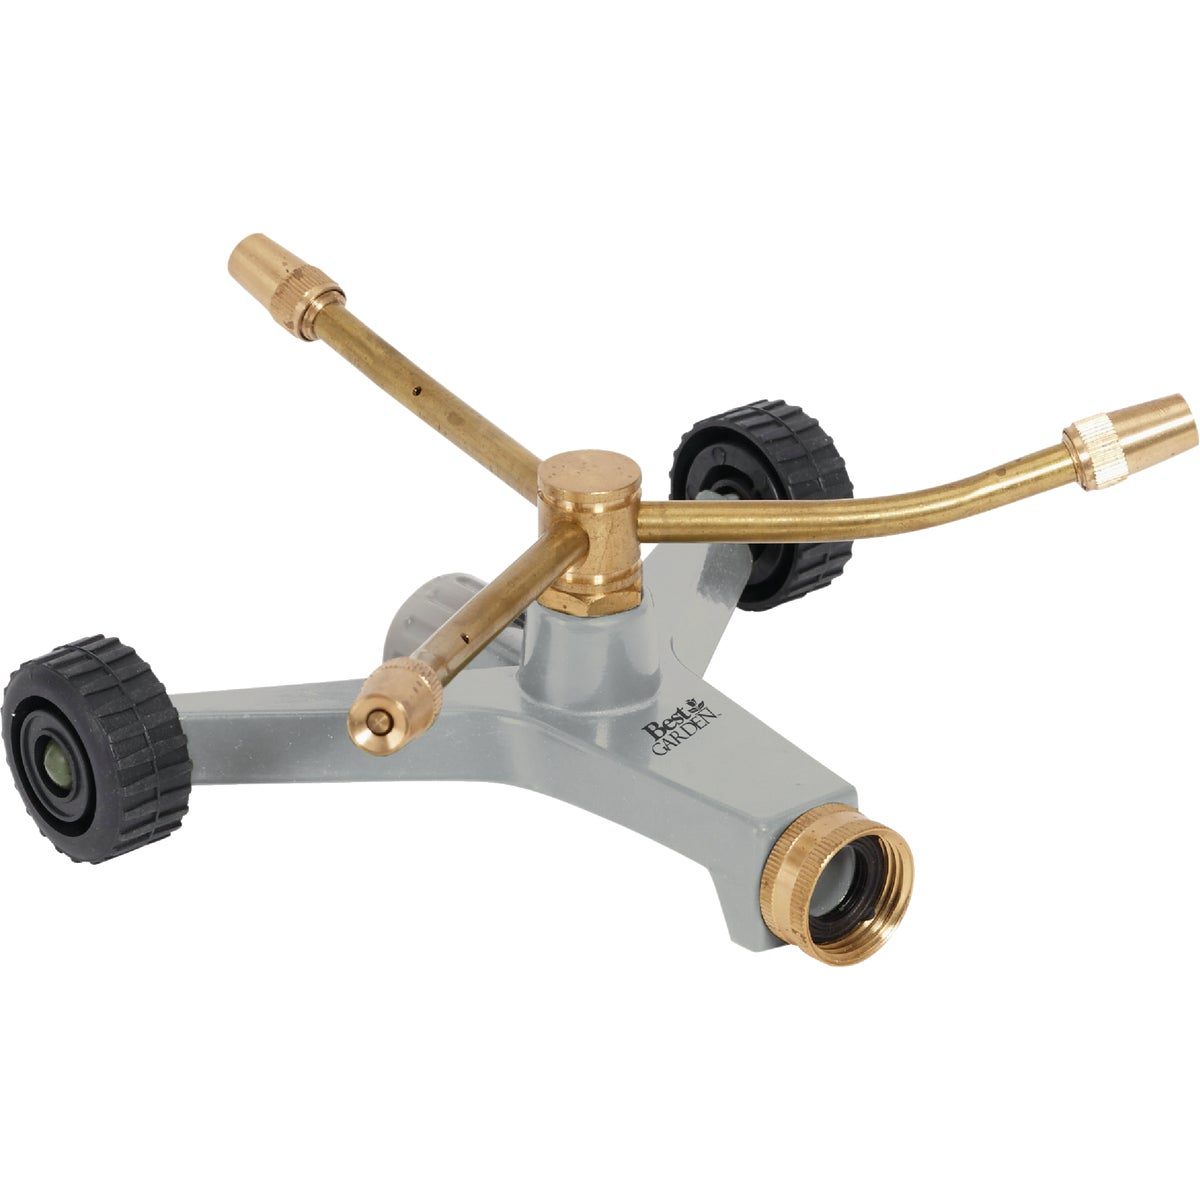 W/WHEELS 3-ARM SPRINKLER